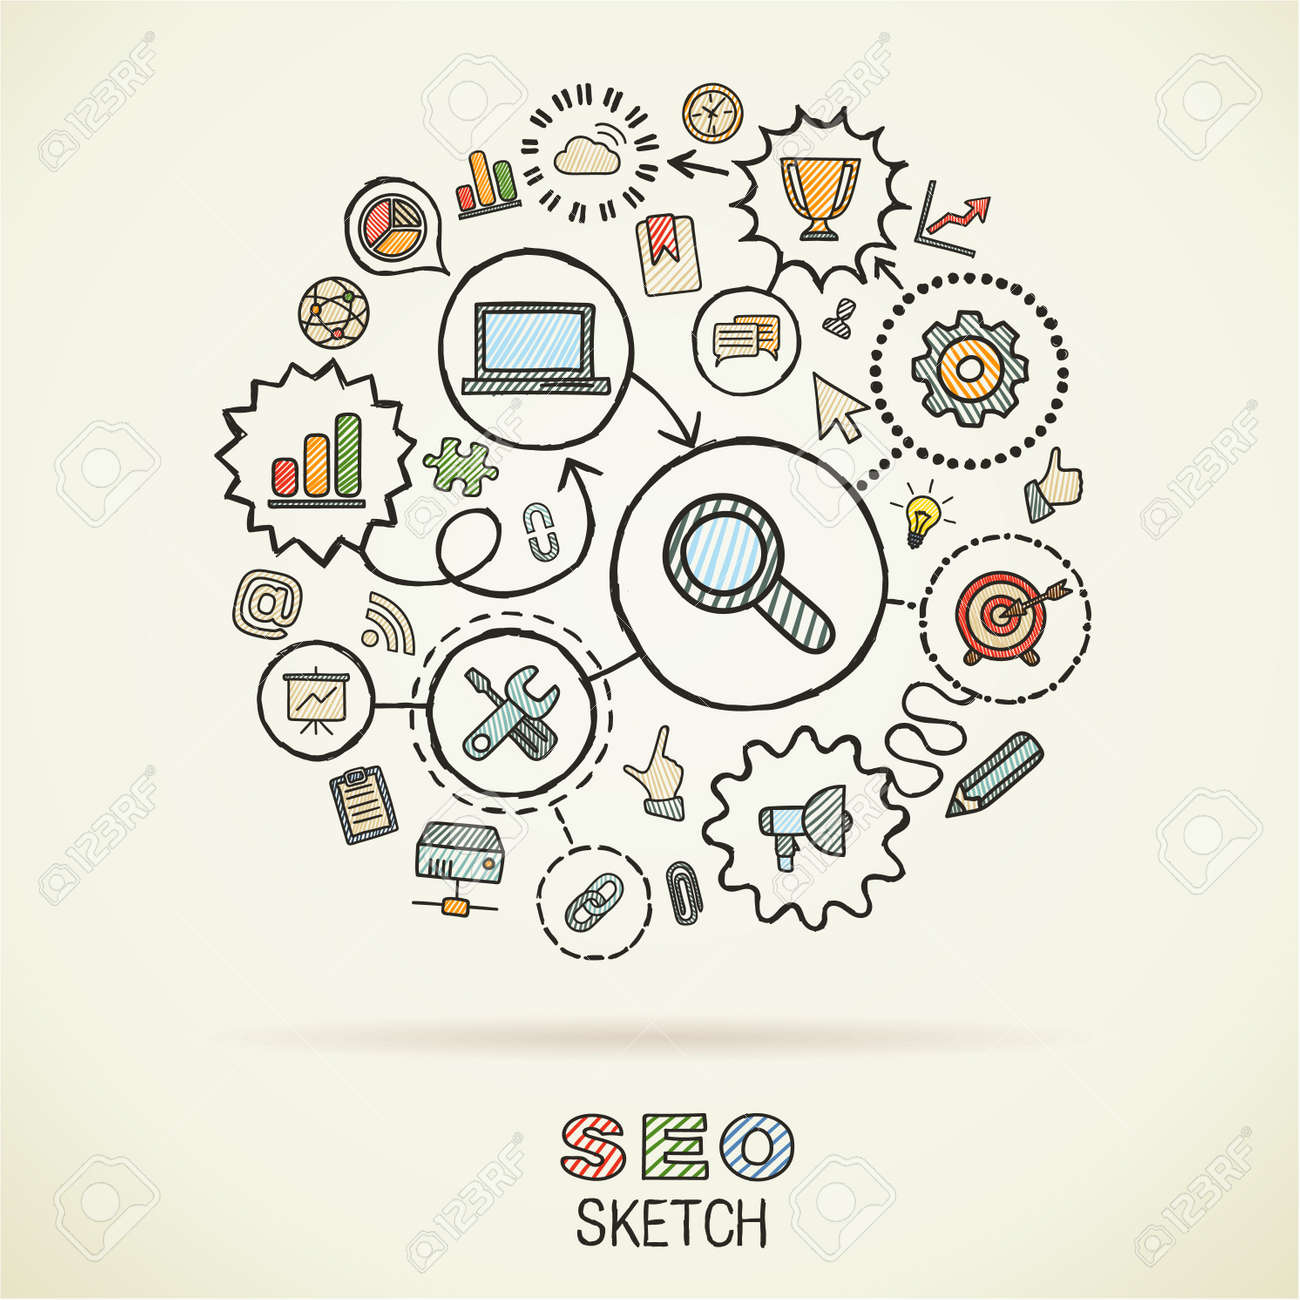 SEOhand drawing integrated sketch icons. Vector doodle marketing pictogram set. Connected infographic illustration on paper: network, business, connect, analytics, social media and market concepts - 43377689